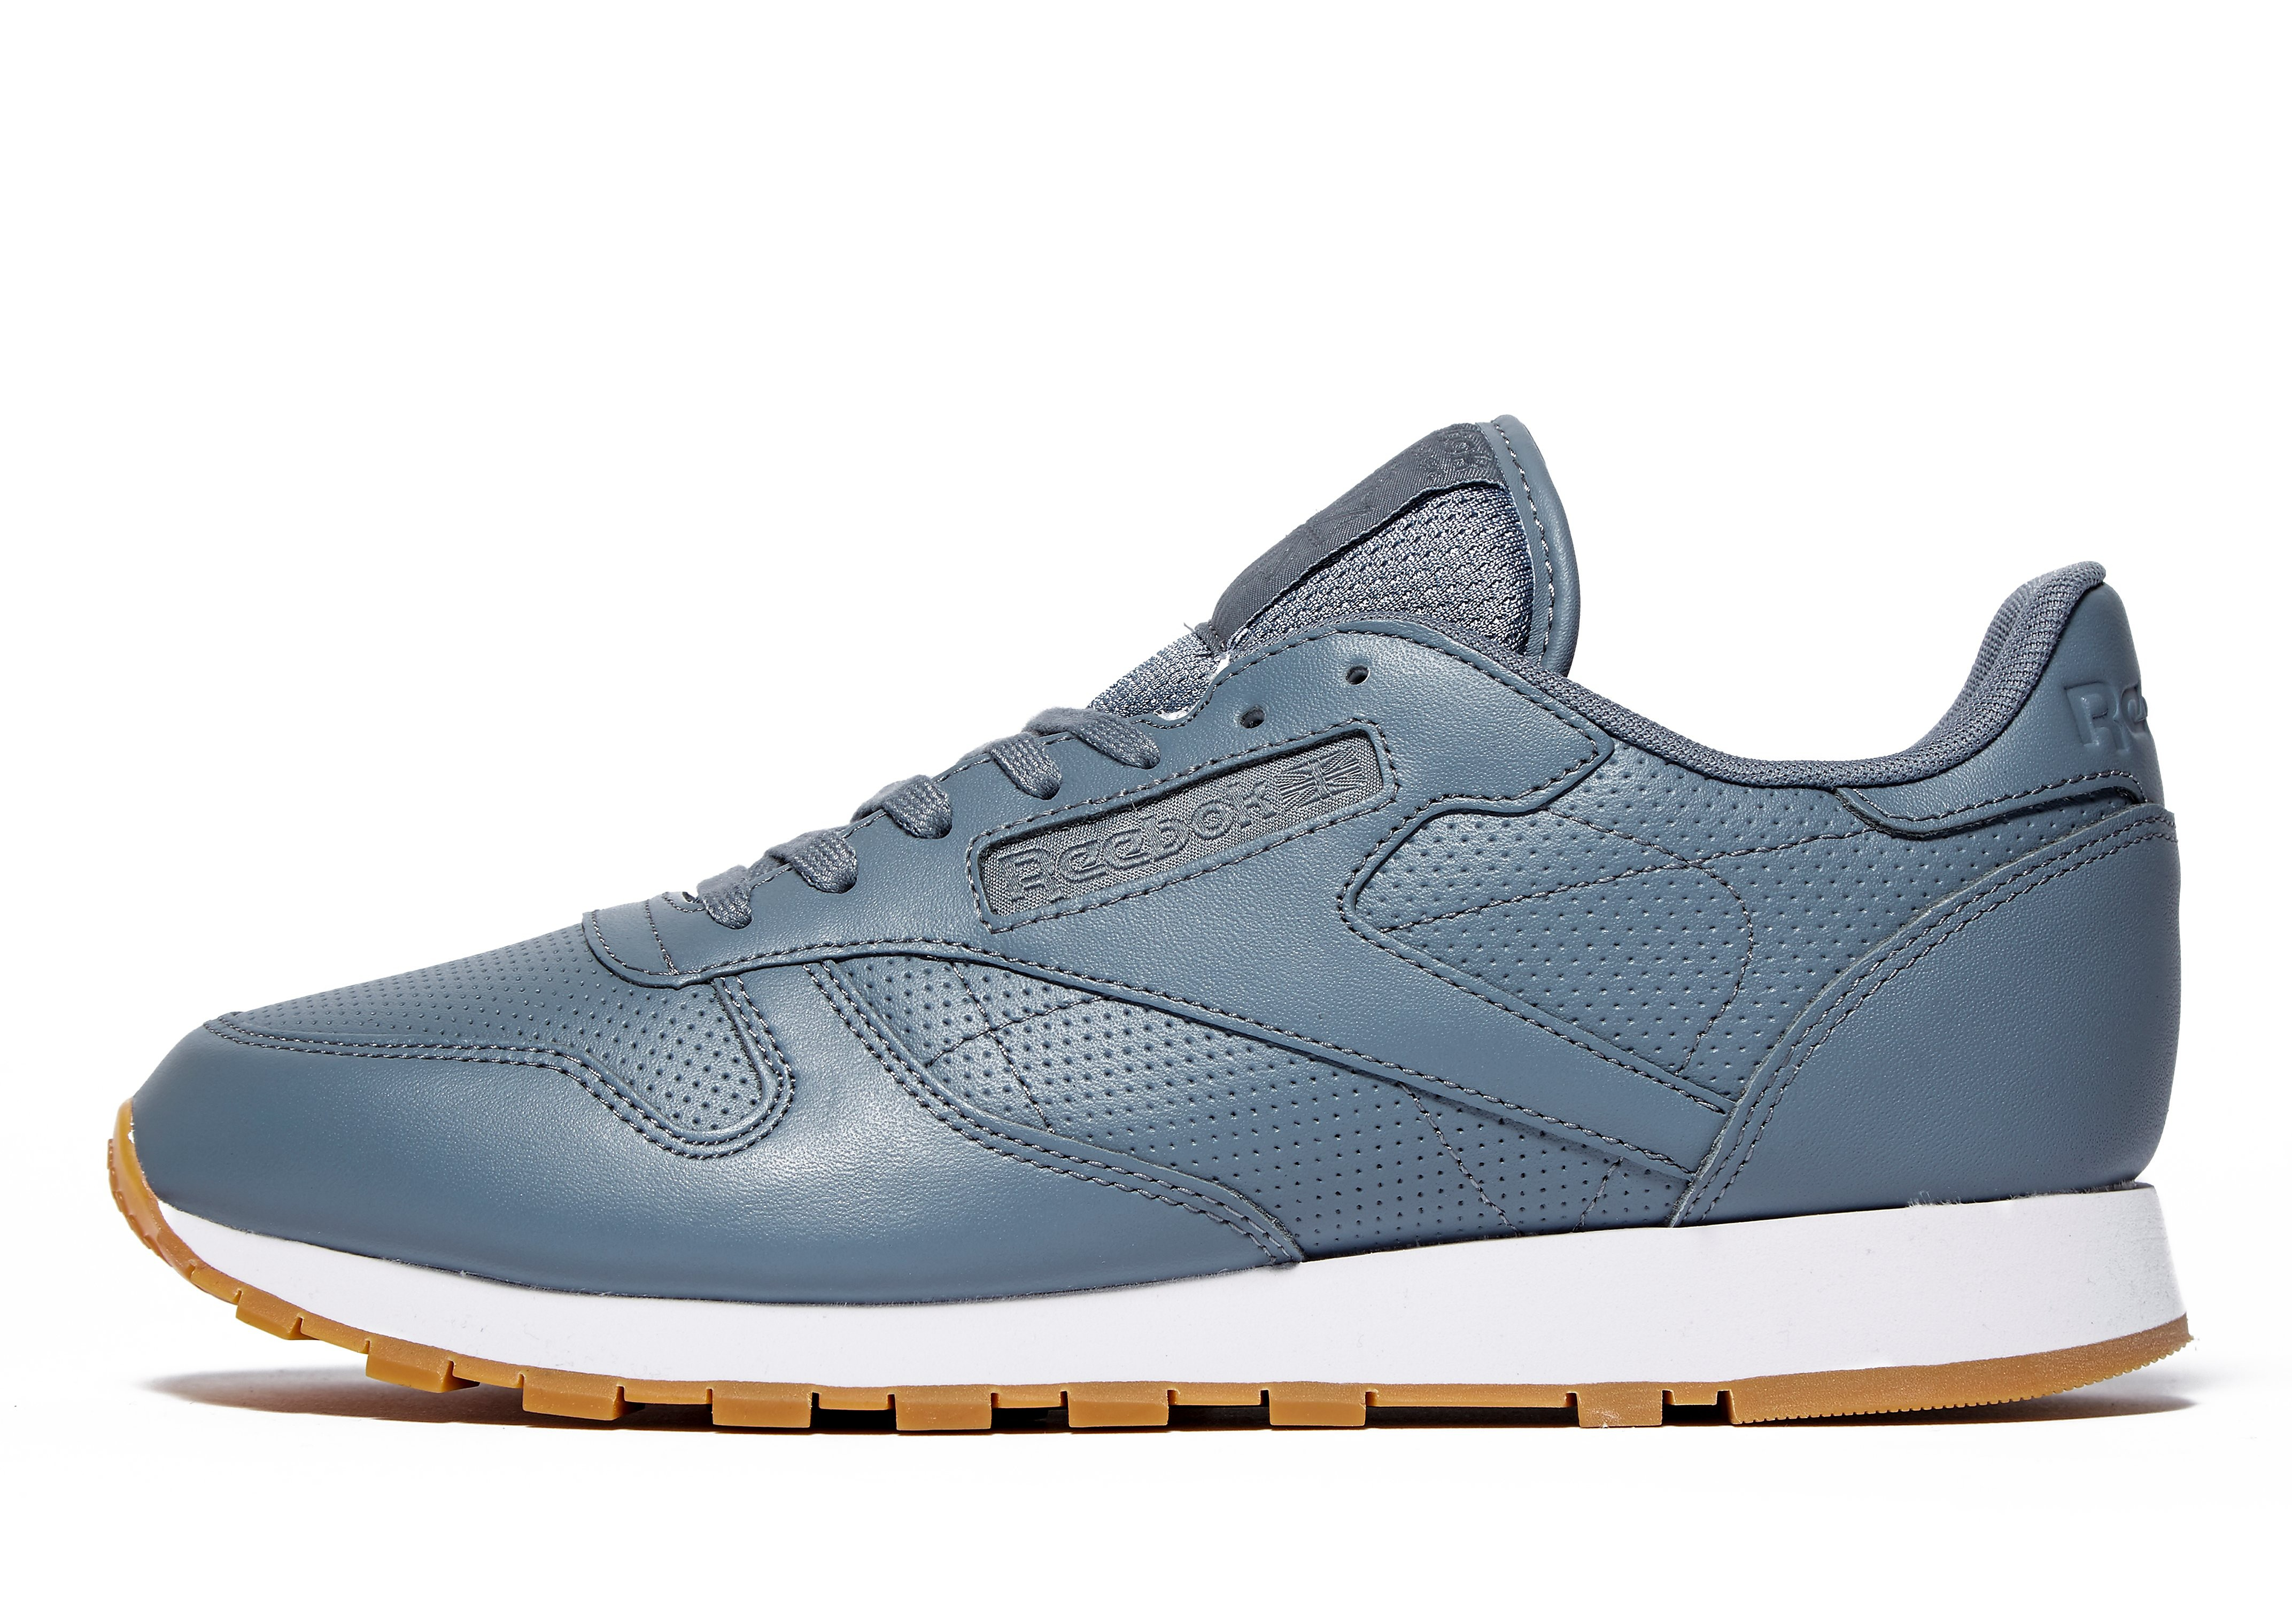 Reebok Classic Leather Perforated Homme